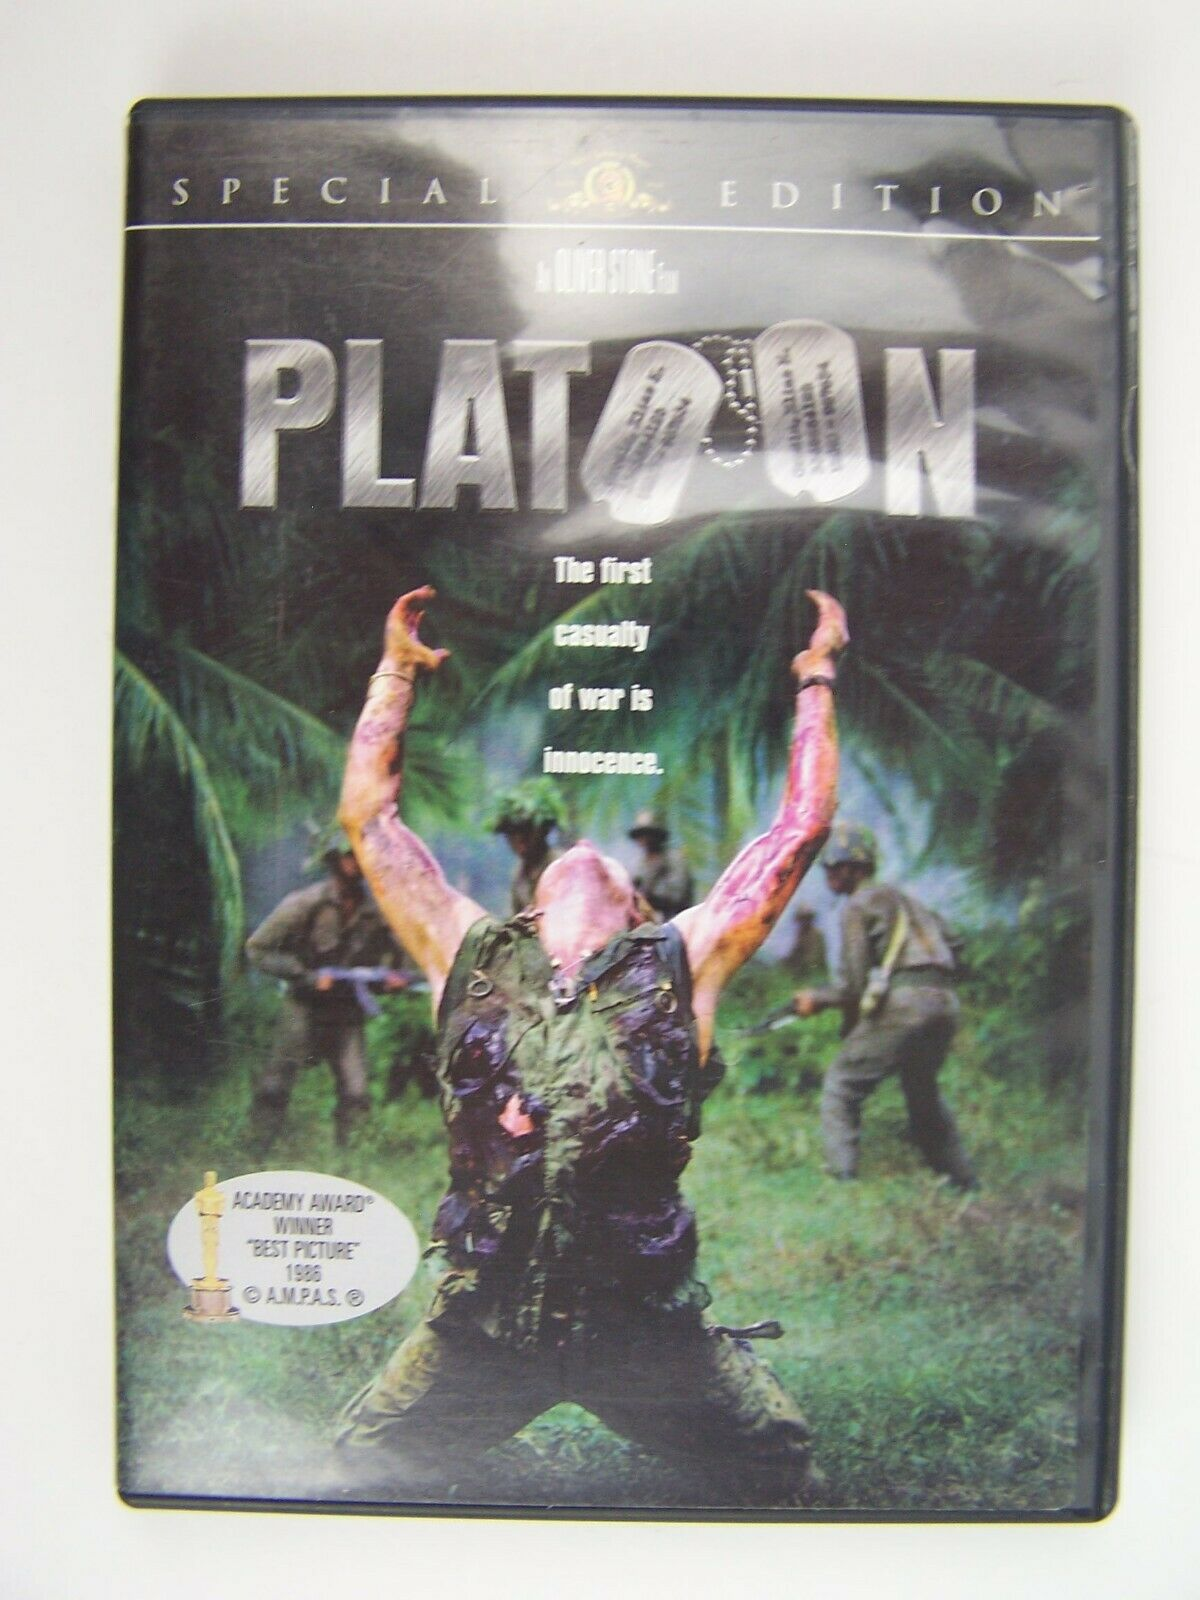 Platoon Special Edition DVD 4010232008336